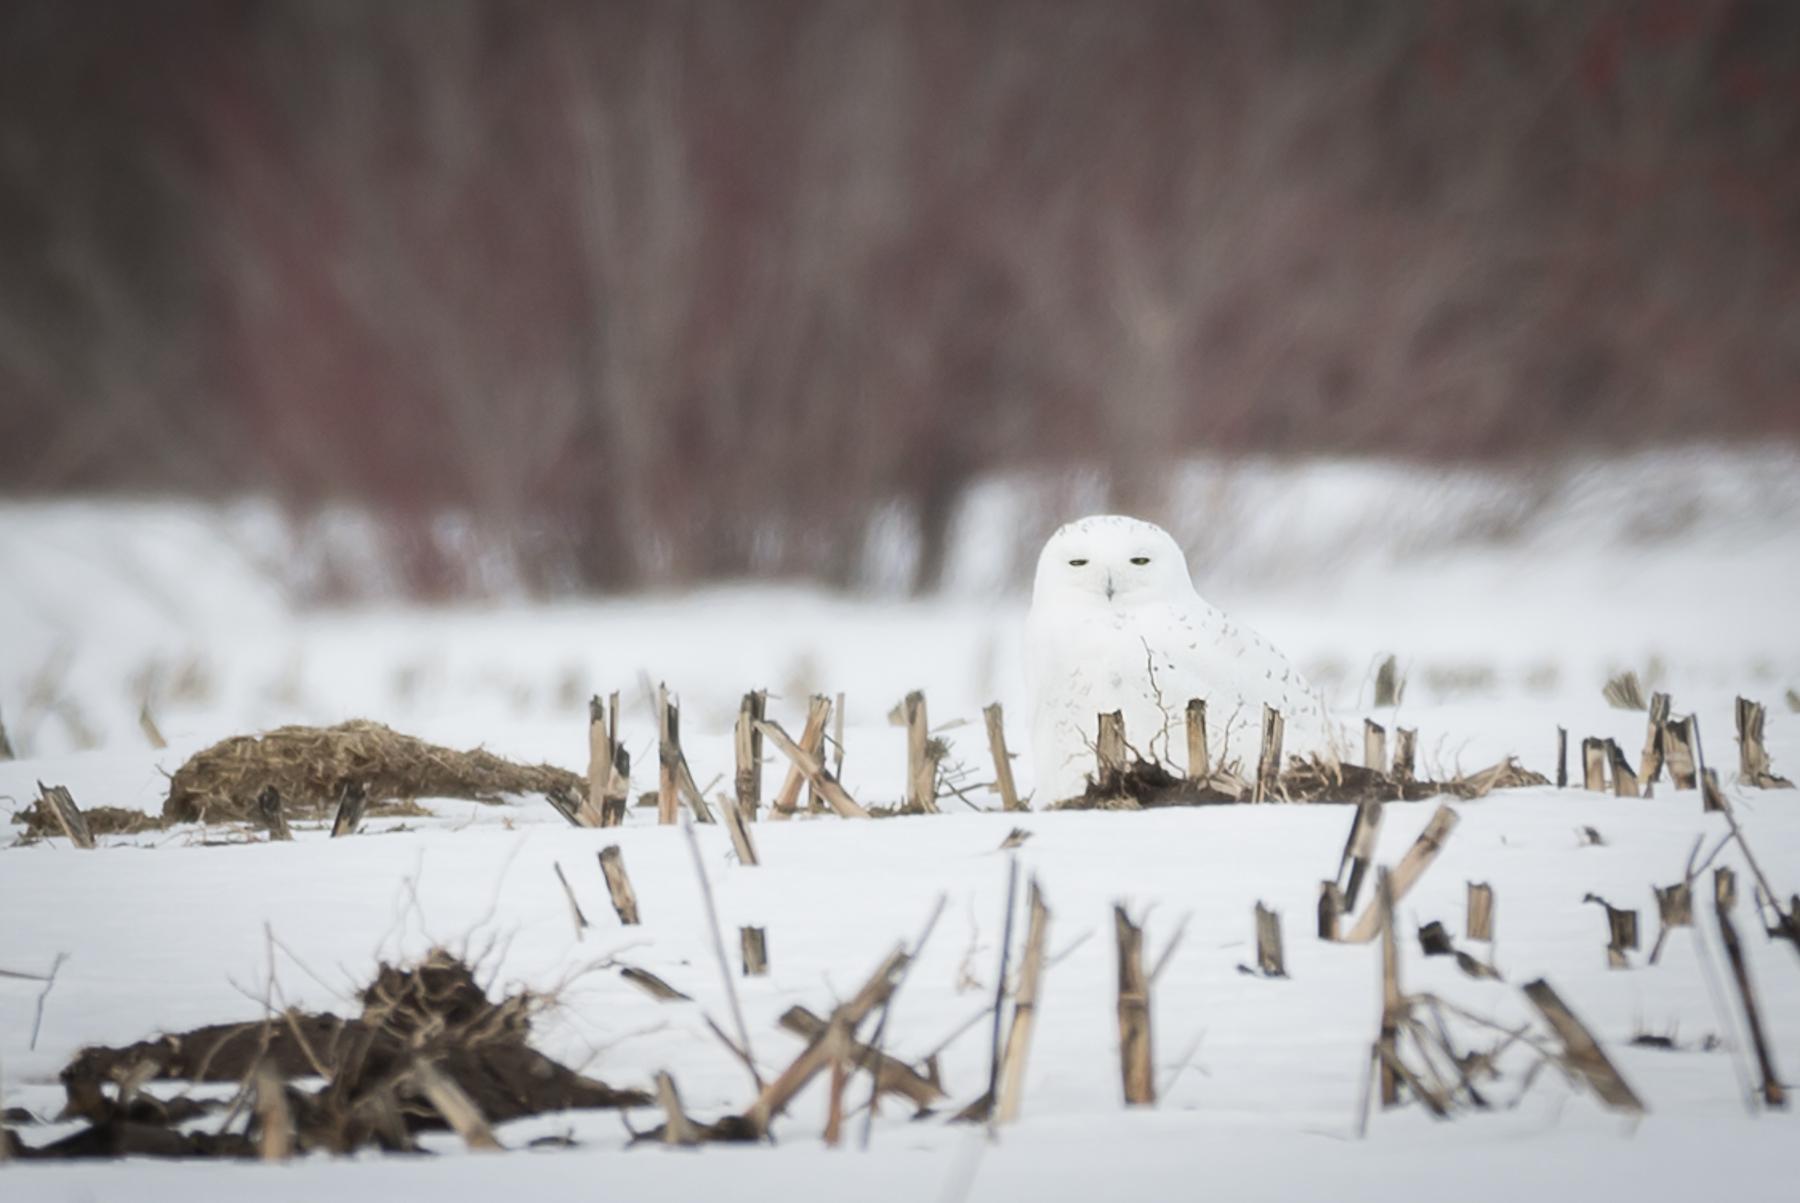 A snowy owl blends in perfectly with it's surroundings